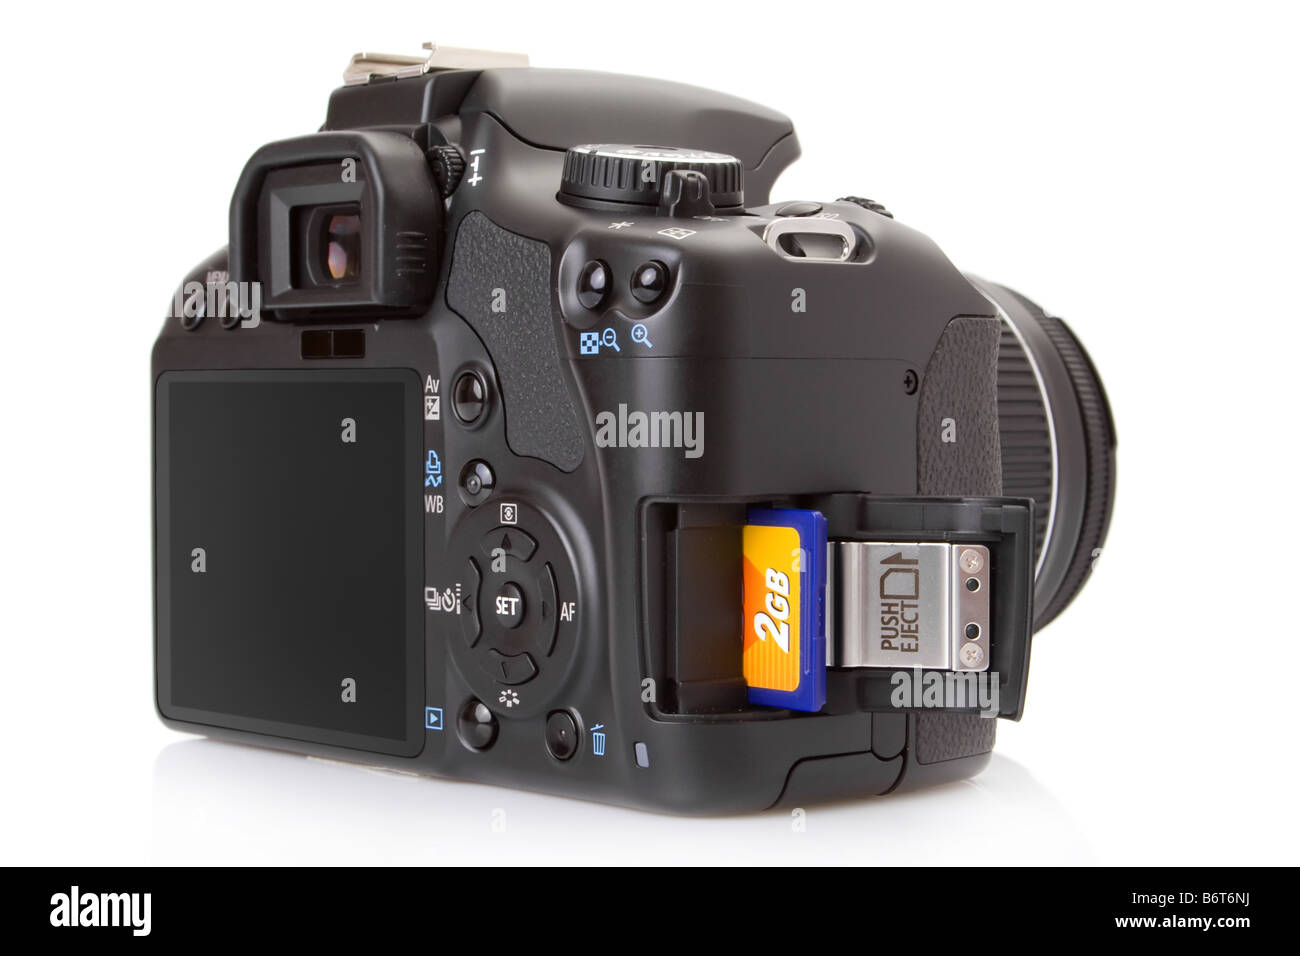 Digital slr with a SD (Secure Digital) memory card half inserted into slot - Stock Image